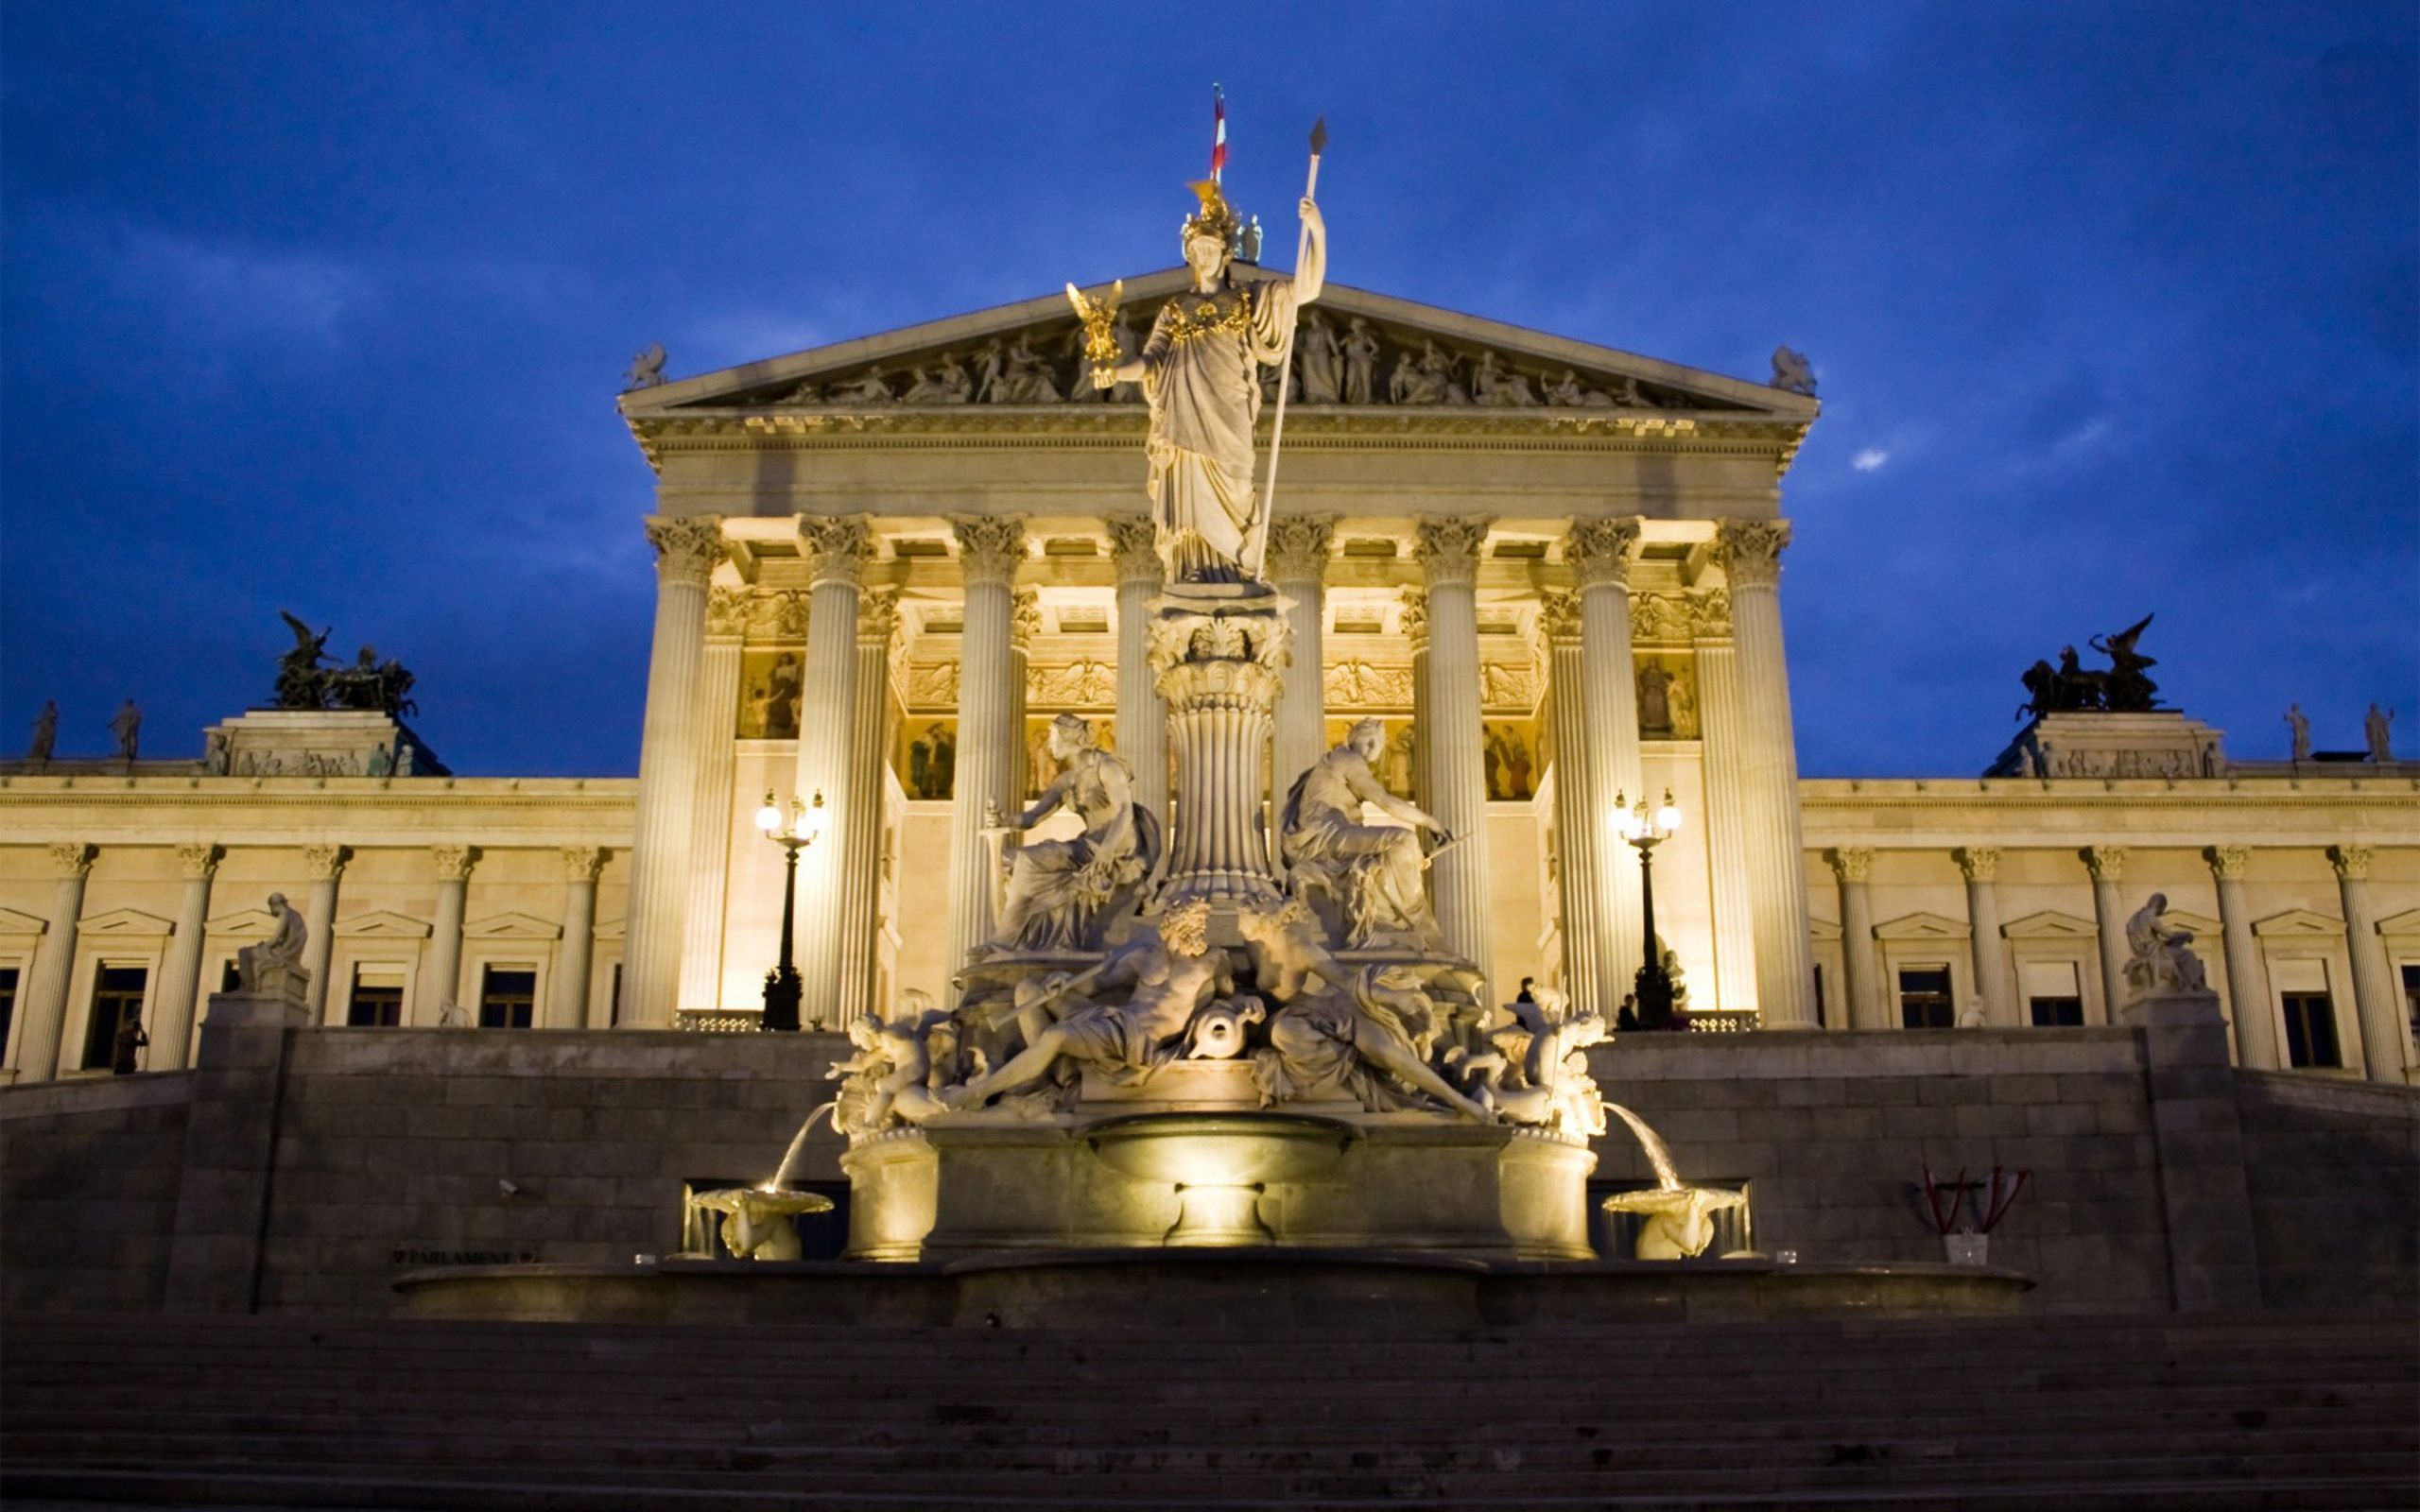 austrian parliament building architecture city jpg 2560 1600